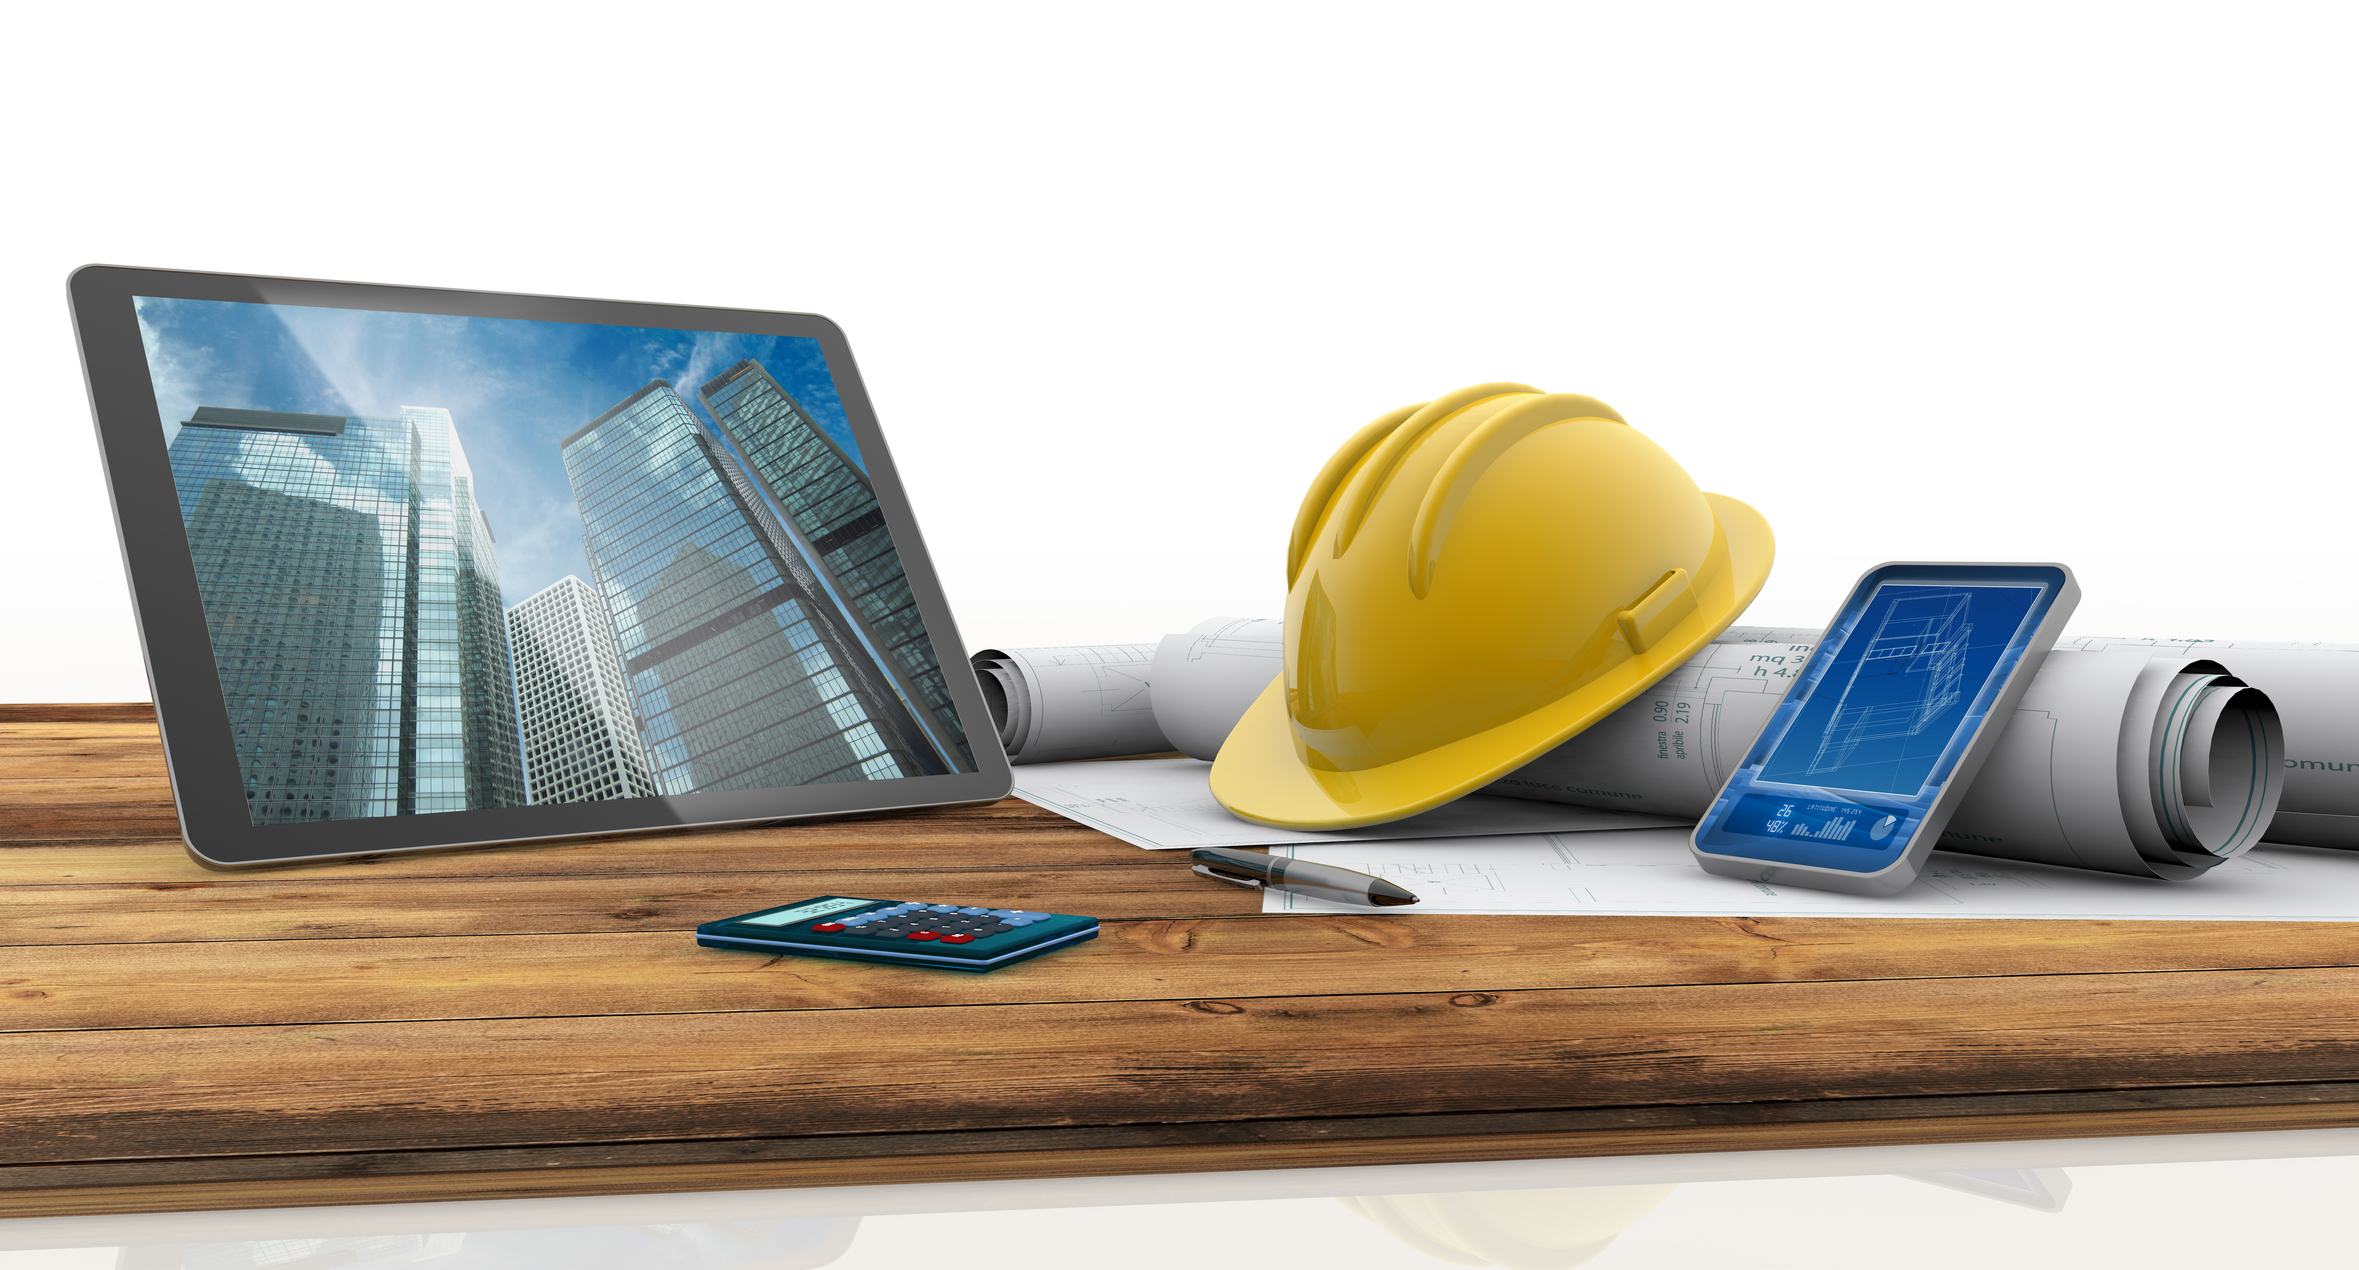 Digitally connected to office - Onsite project managers are updated in real time on plans and project information